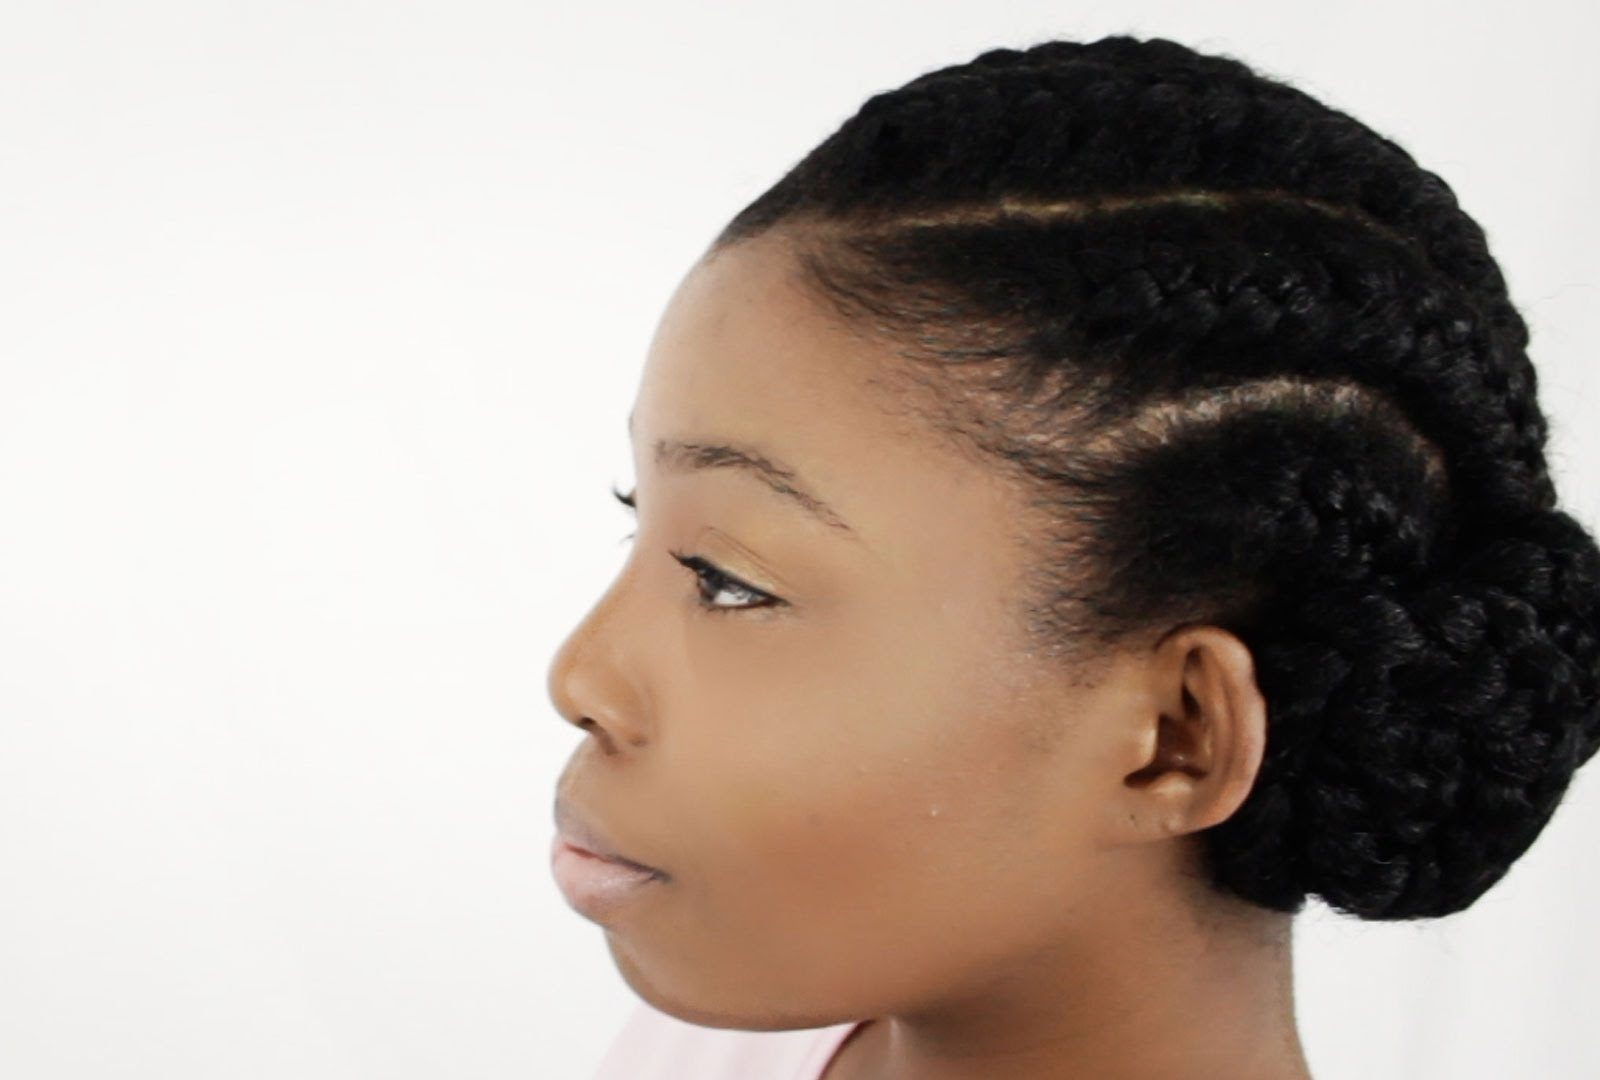 Donts For Processed Weave Hair Weave Salon